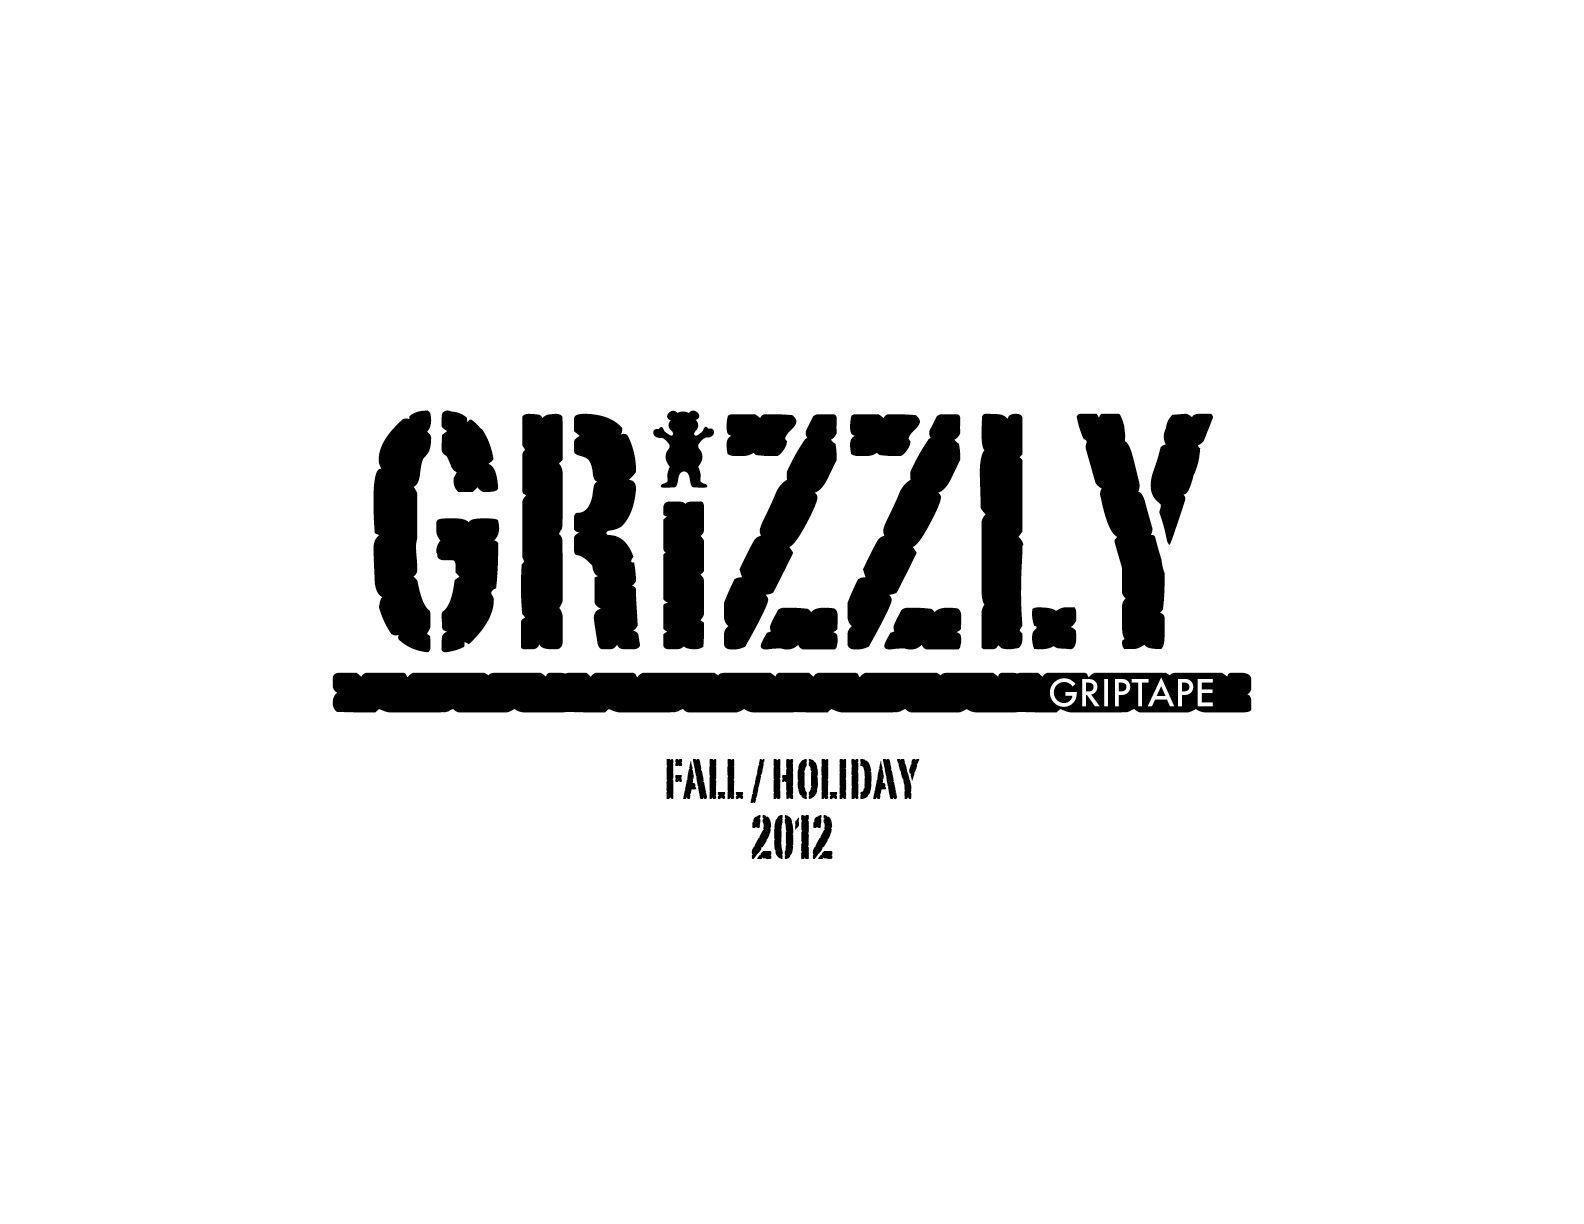 grizzly grip wallpapers - wallpaper cave